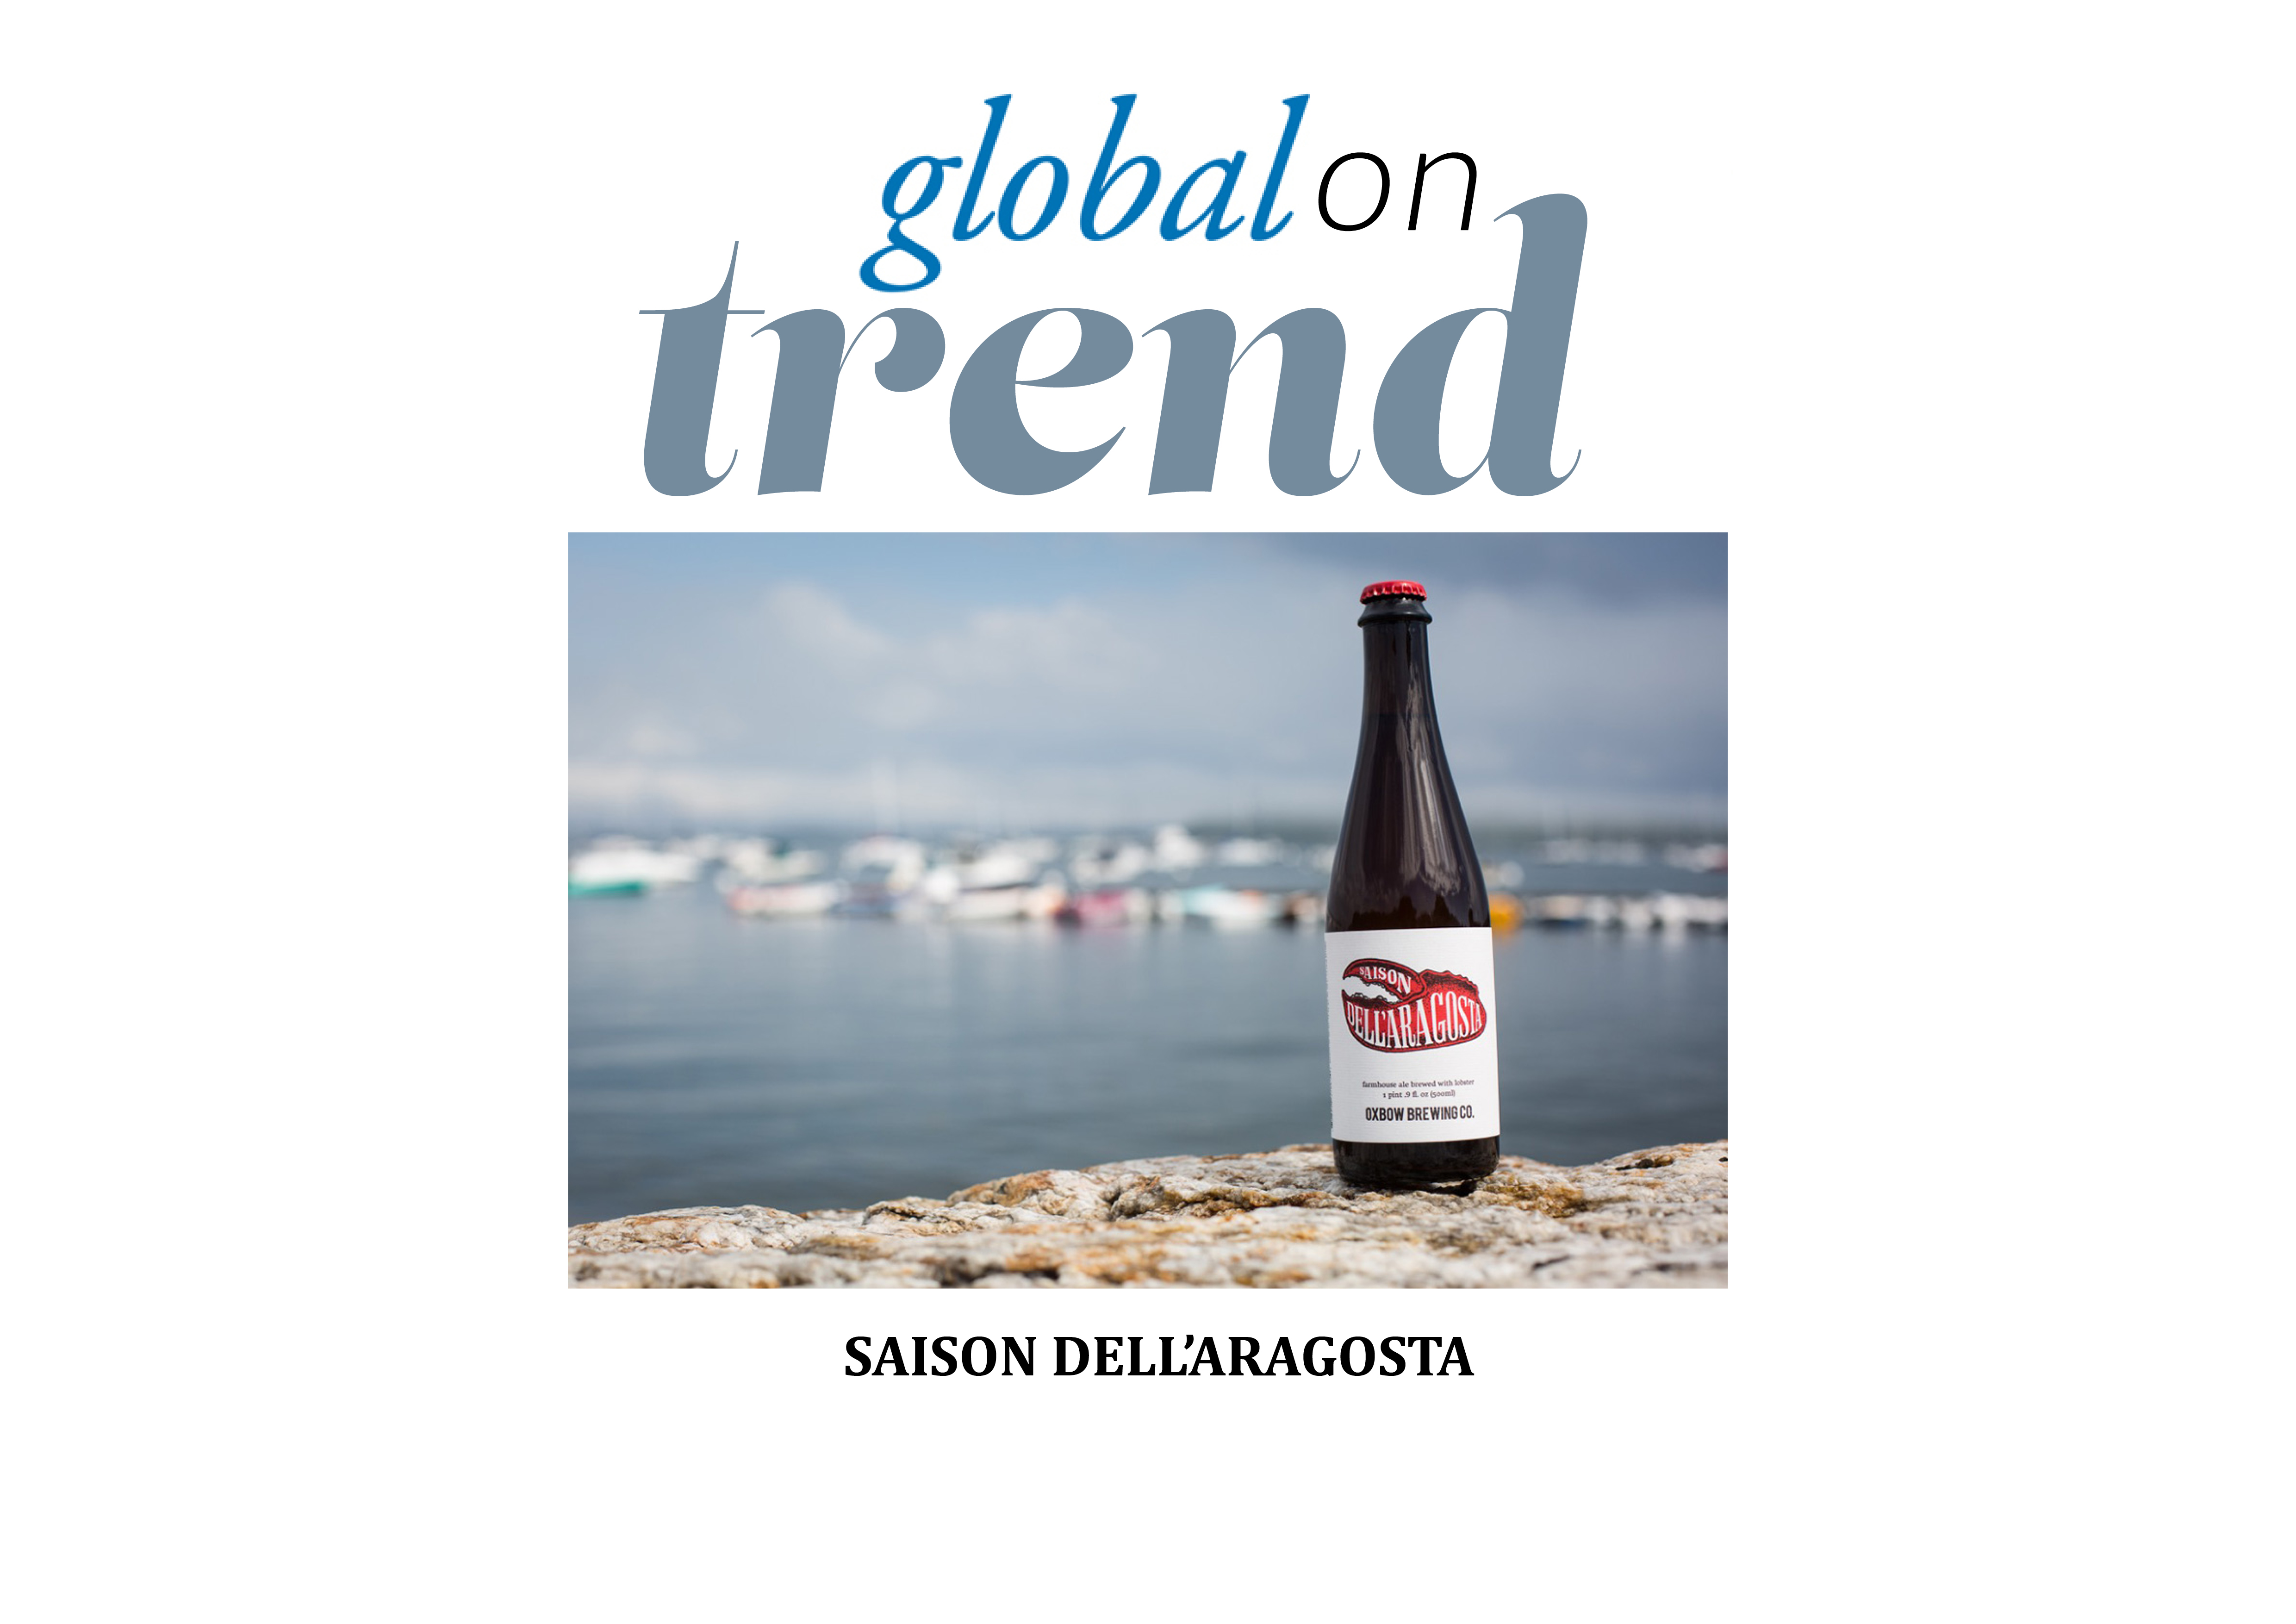 A bottle of Saison dell'Aragosta on a wall with a marina in the backgound